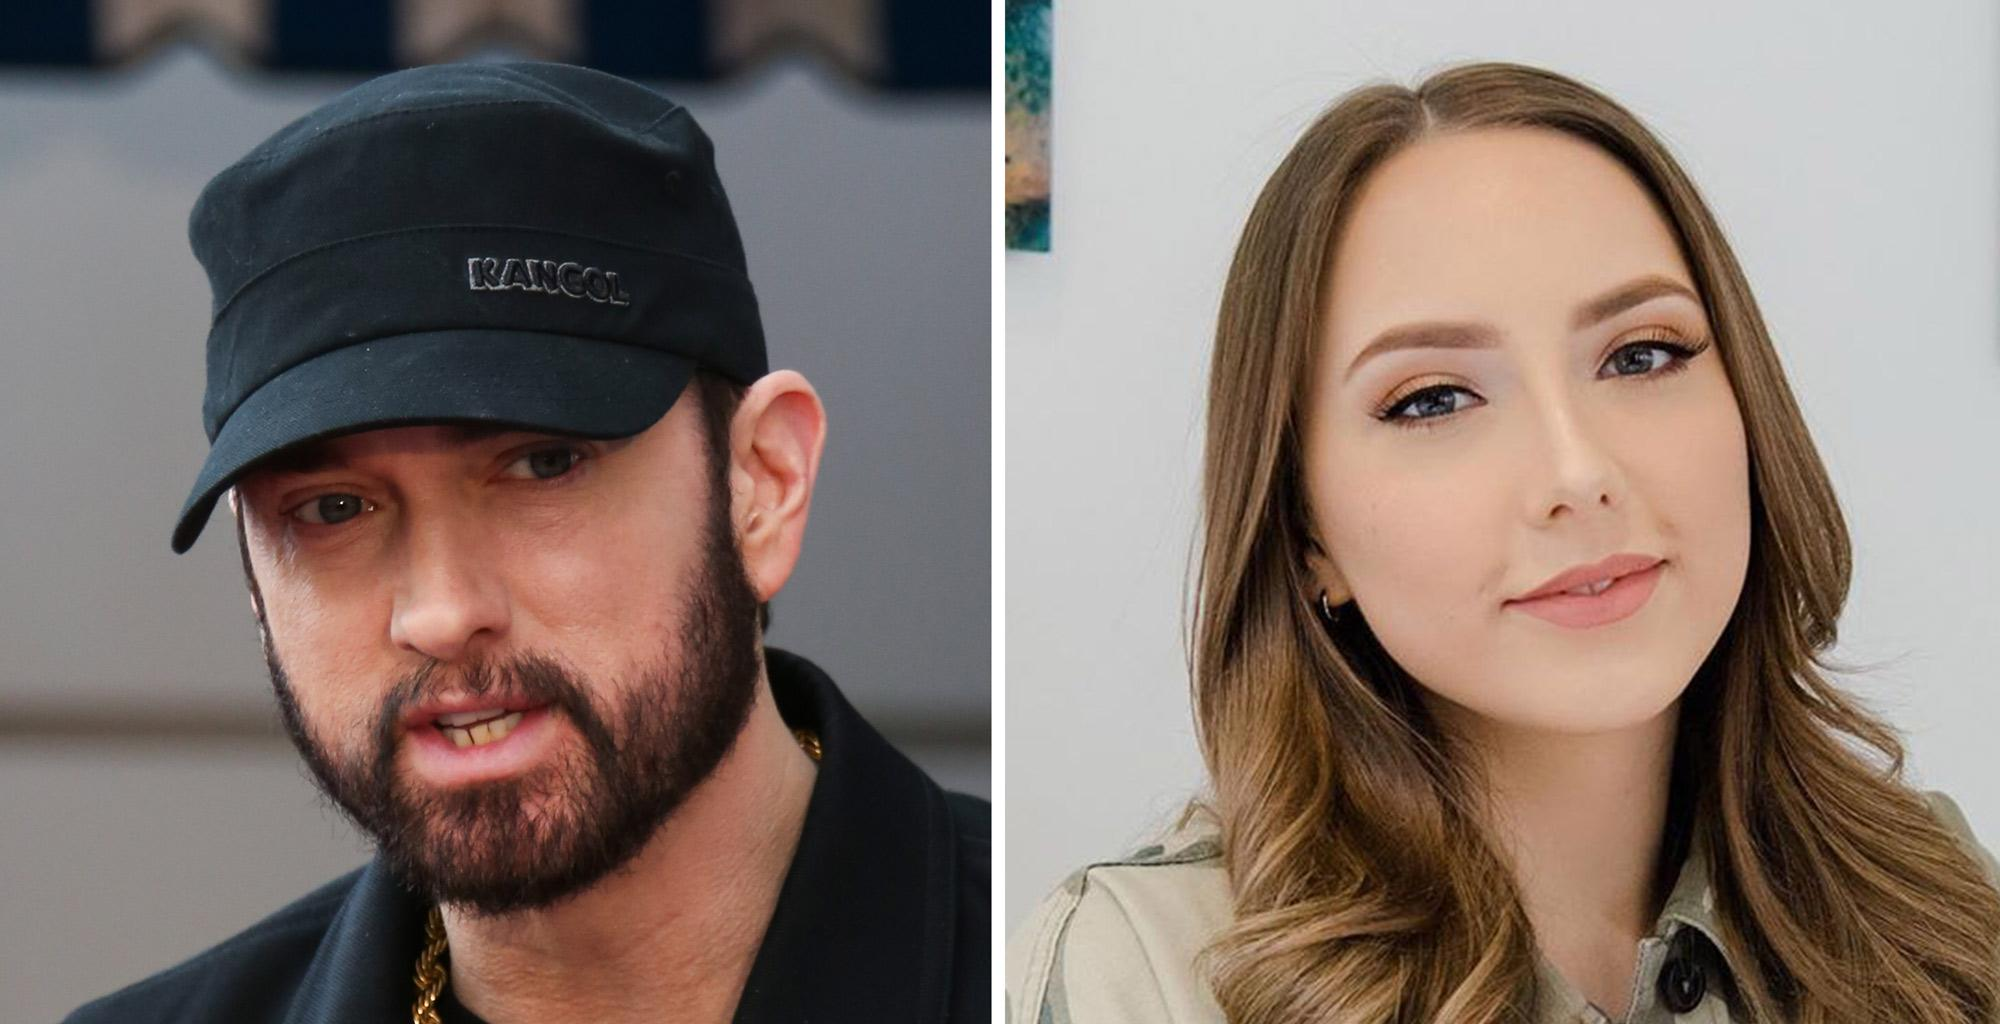 Eminem's Daughter Hailie Rocks Crop Top While Sipping A Cocktail - Check Out The Stunning Pics!